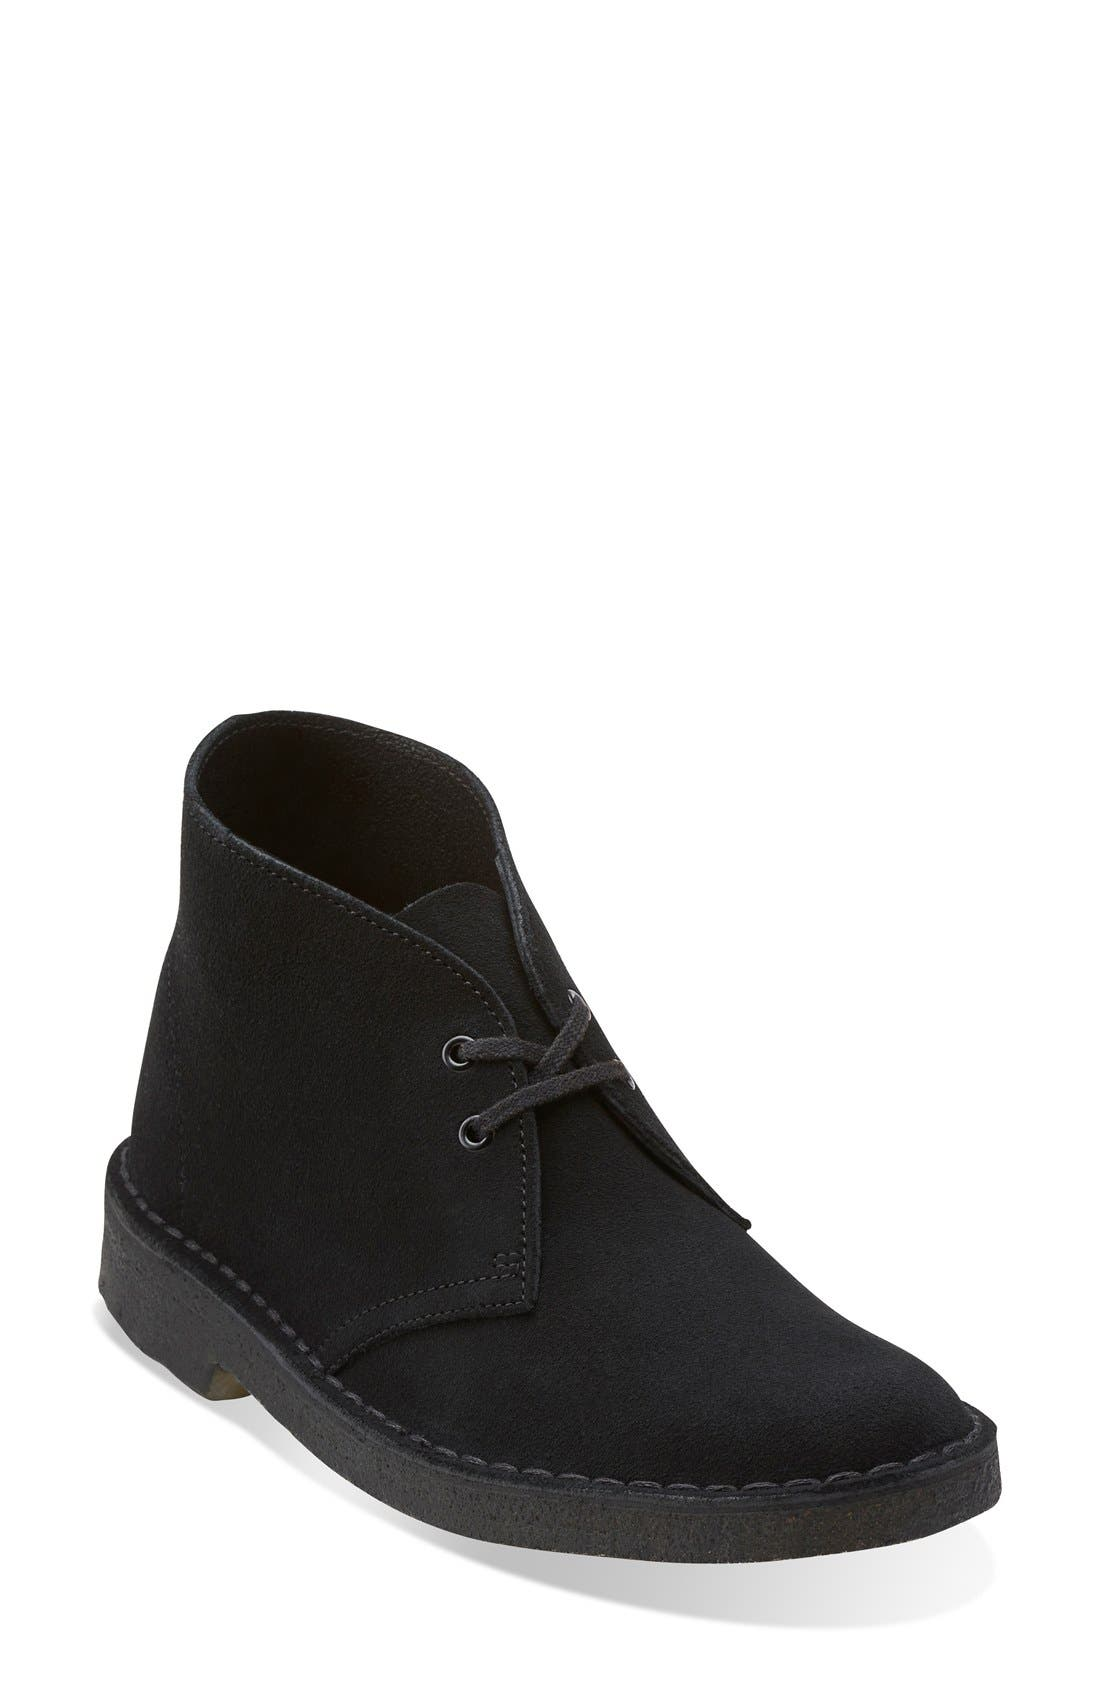 'Desert' Chukka Boot,                         Main,                         color, Black Suede